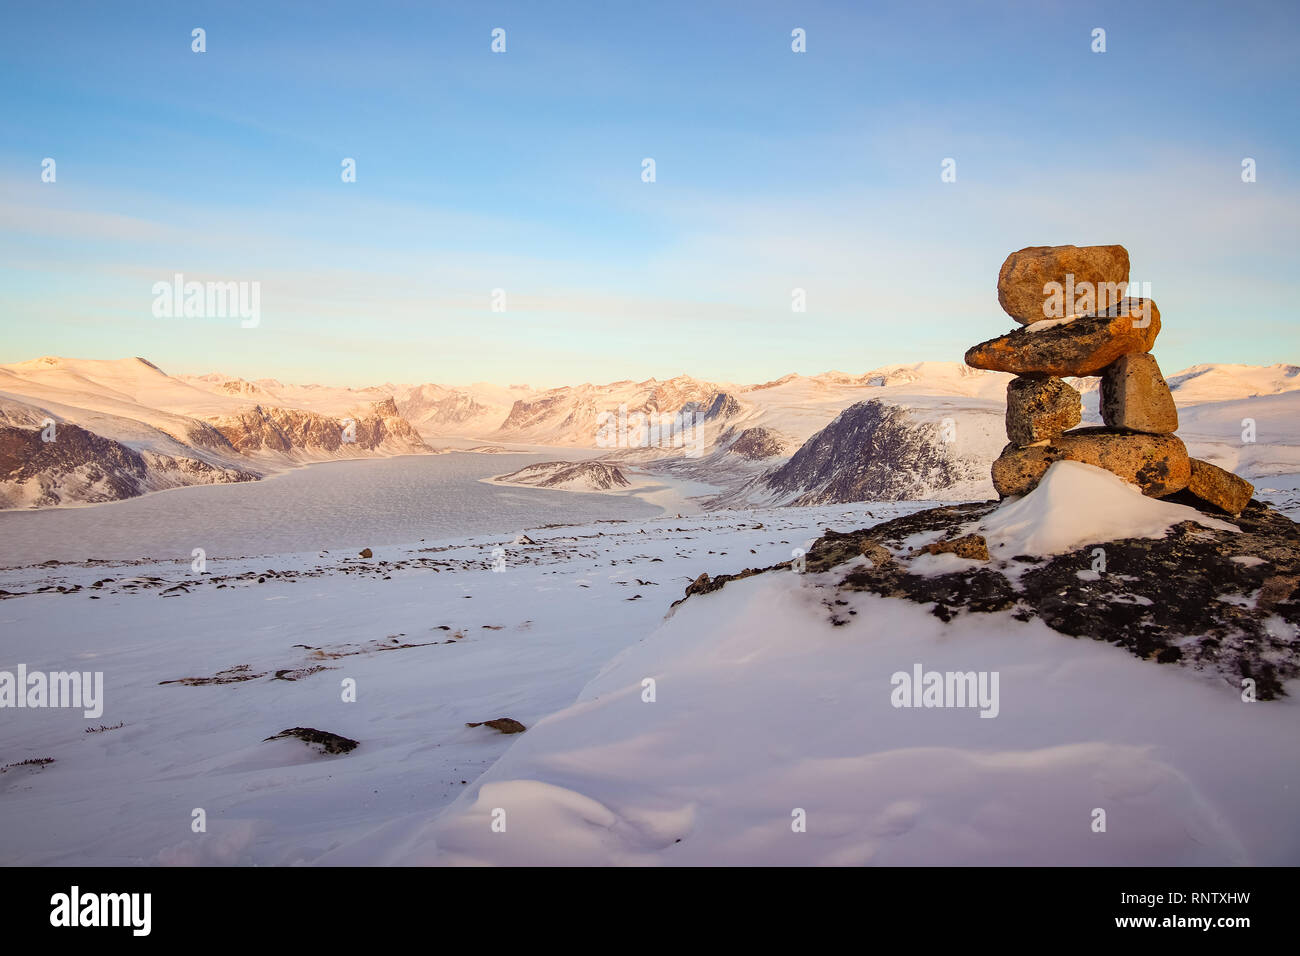 An Inukshuk which is the symbol of Nunavut, located on top of a mountain behind the hamlet of Pangnirtung on Baffin Island. - Stock Image